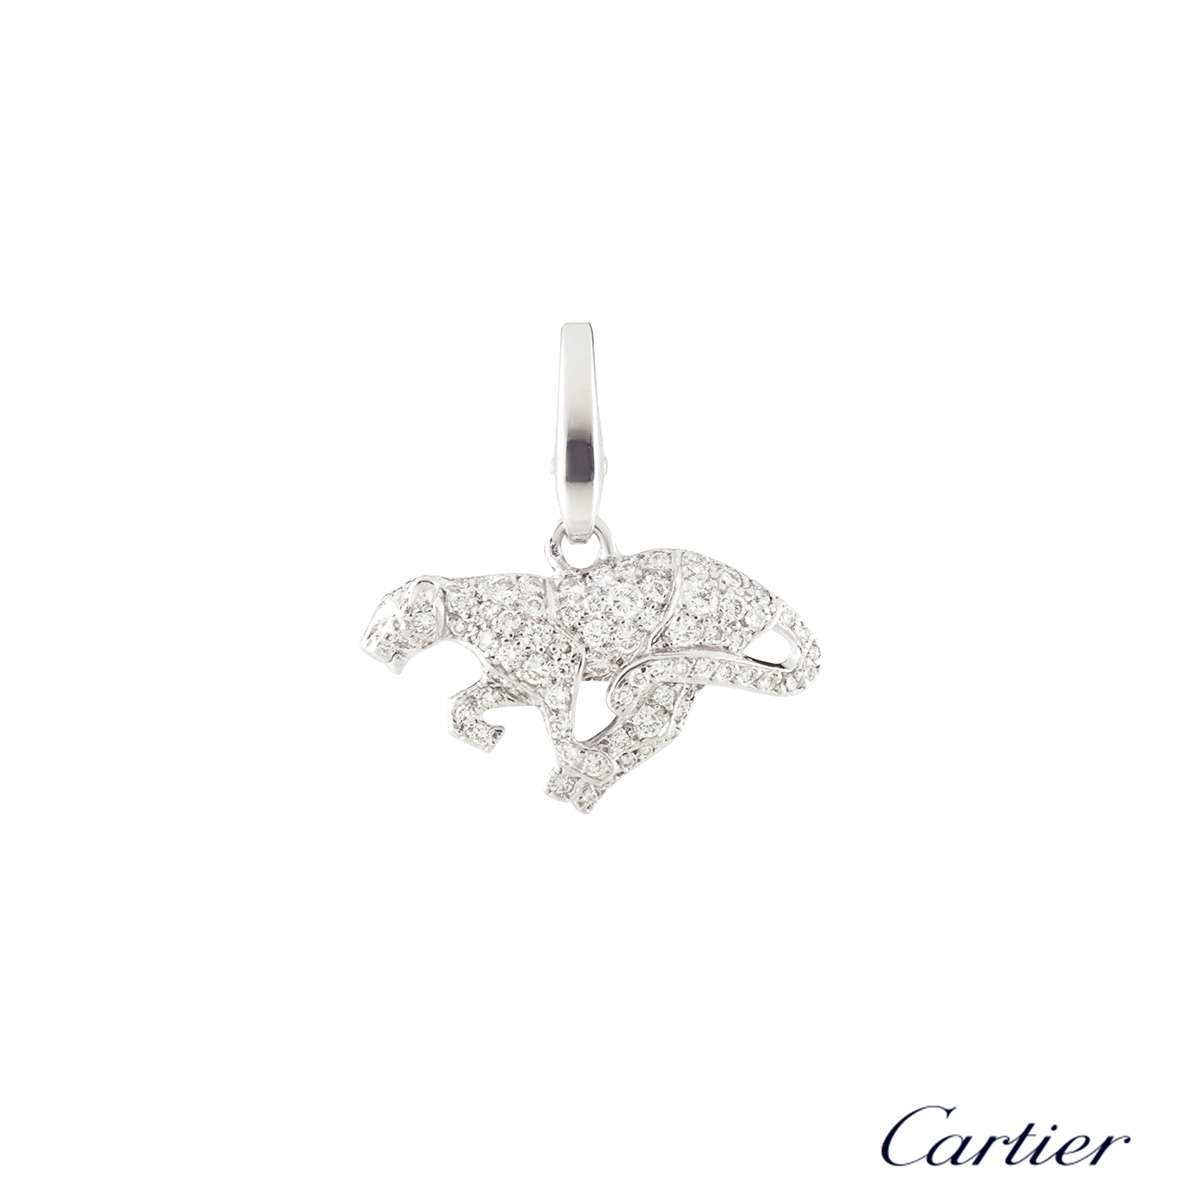 Cartier White Gold Diamond Panthere Charm